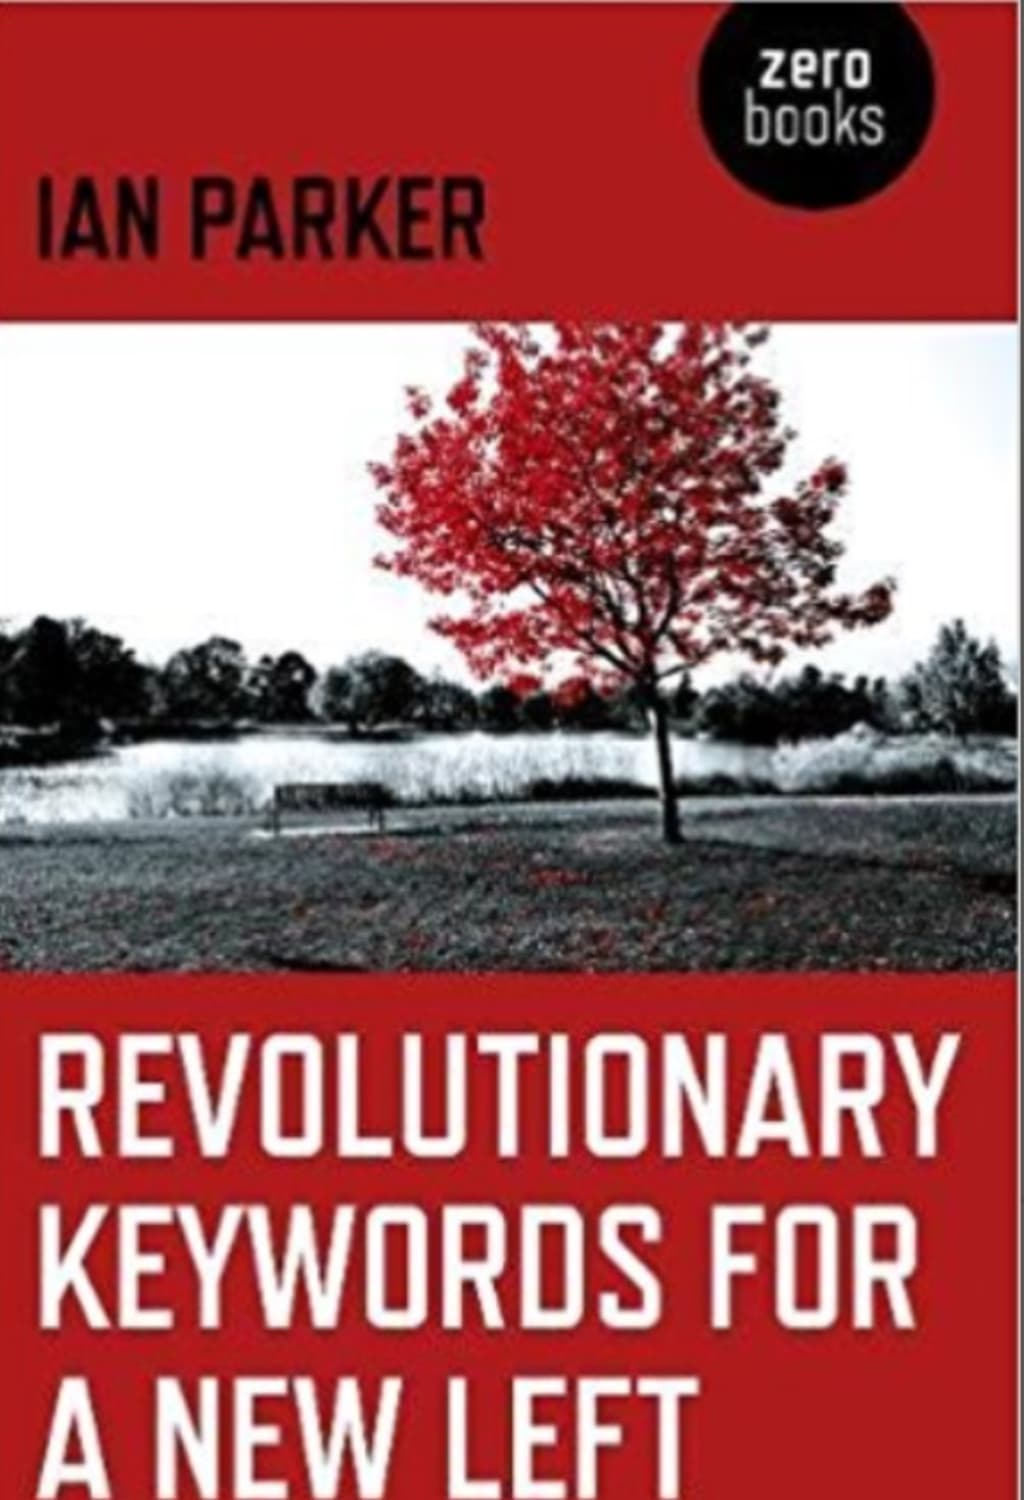 'Revolutionary Keywords for a New Left' by Ian Parker